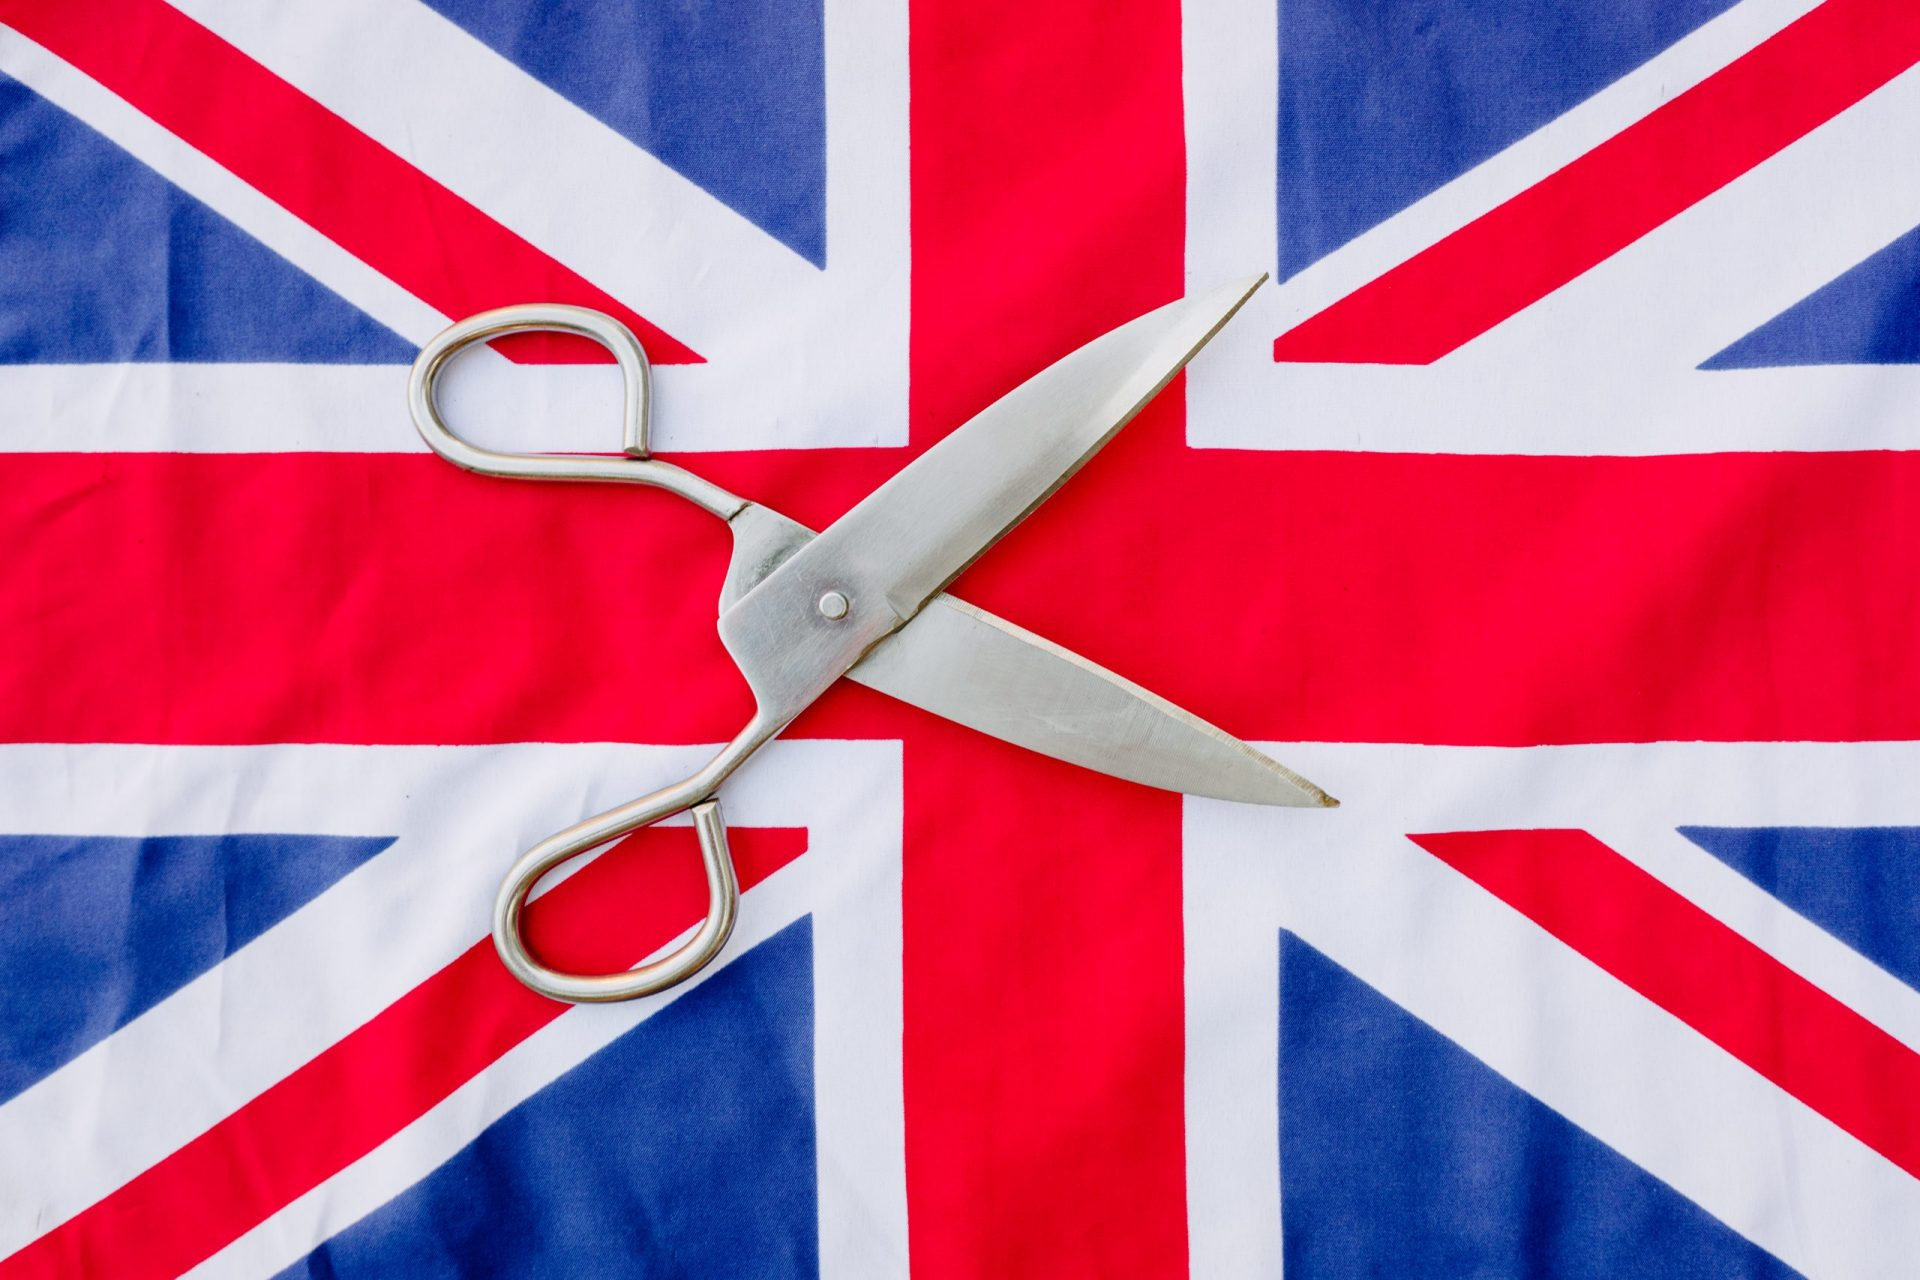 Brexit poses bribery challenges but ISO 37001 provides solutions